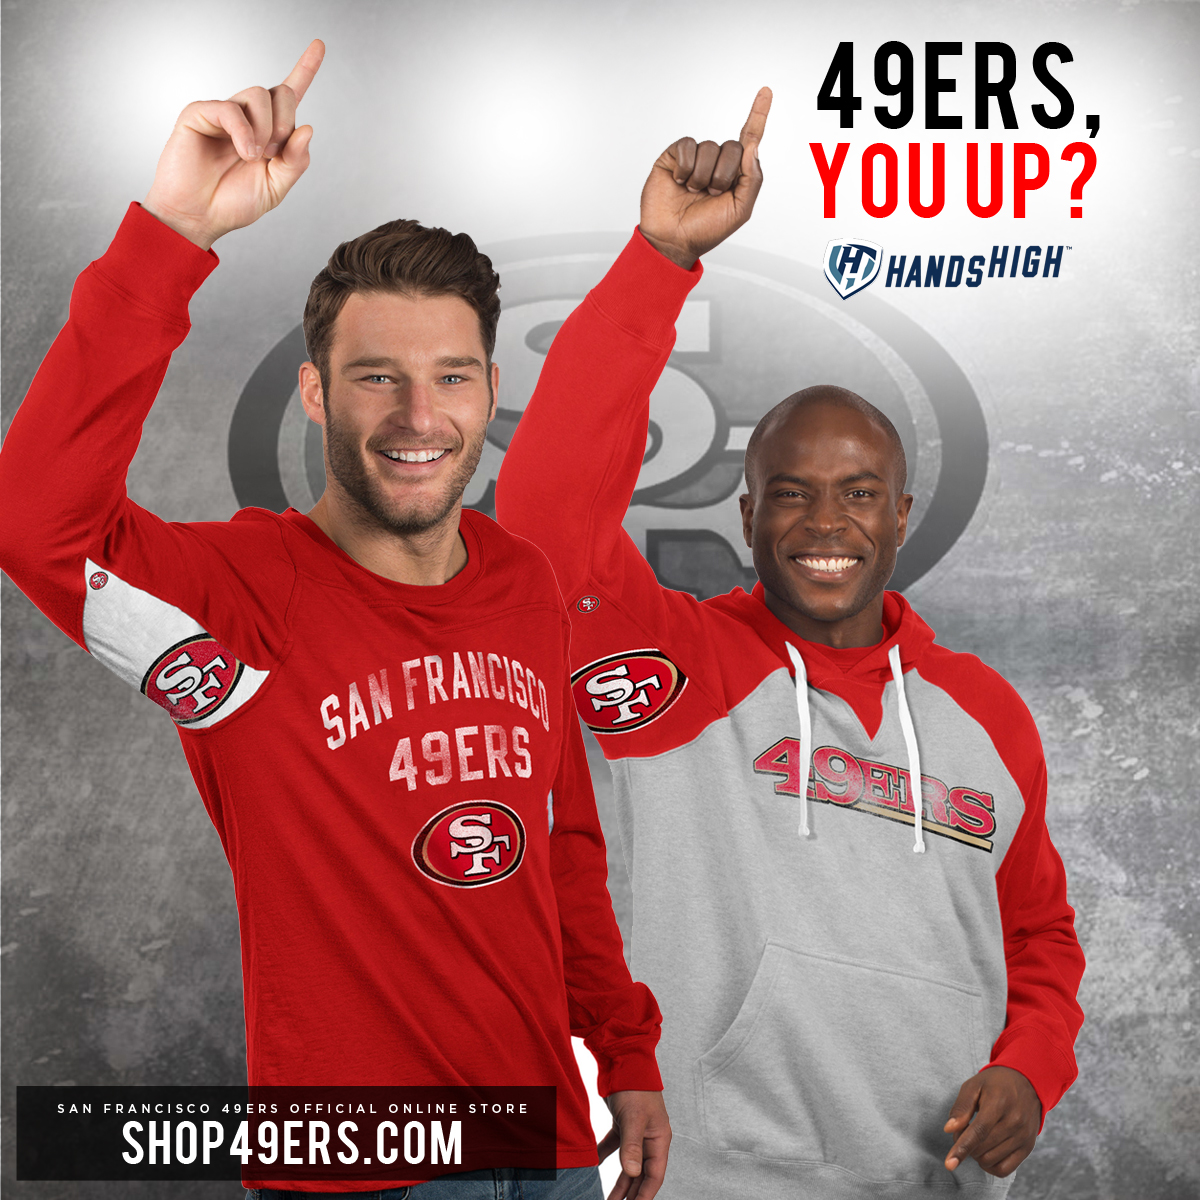 New Hands High 49ers Gear!